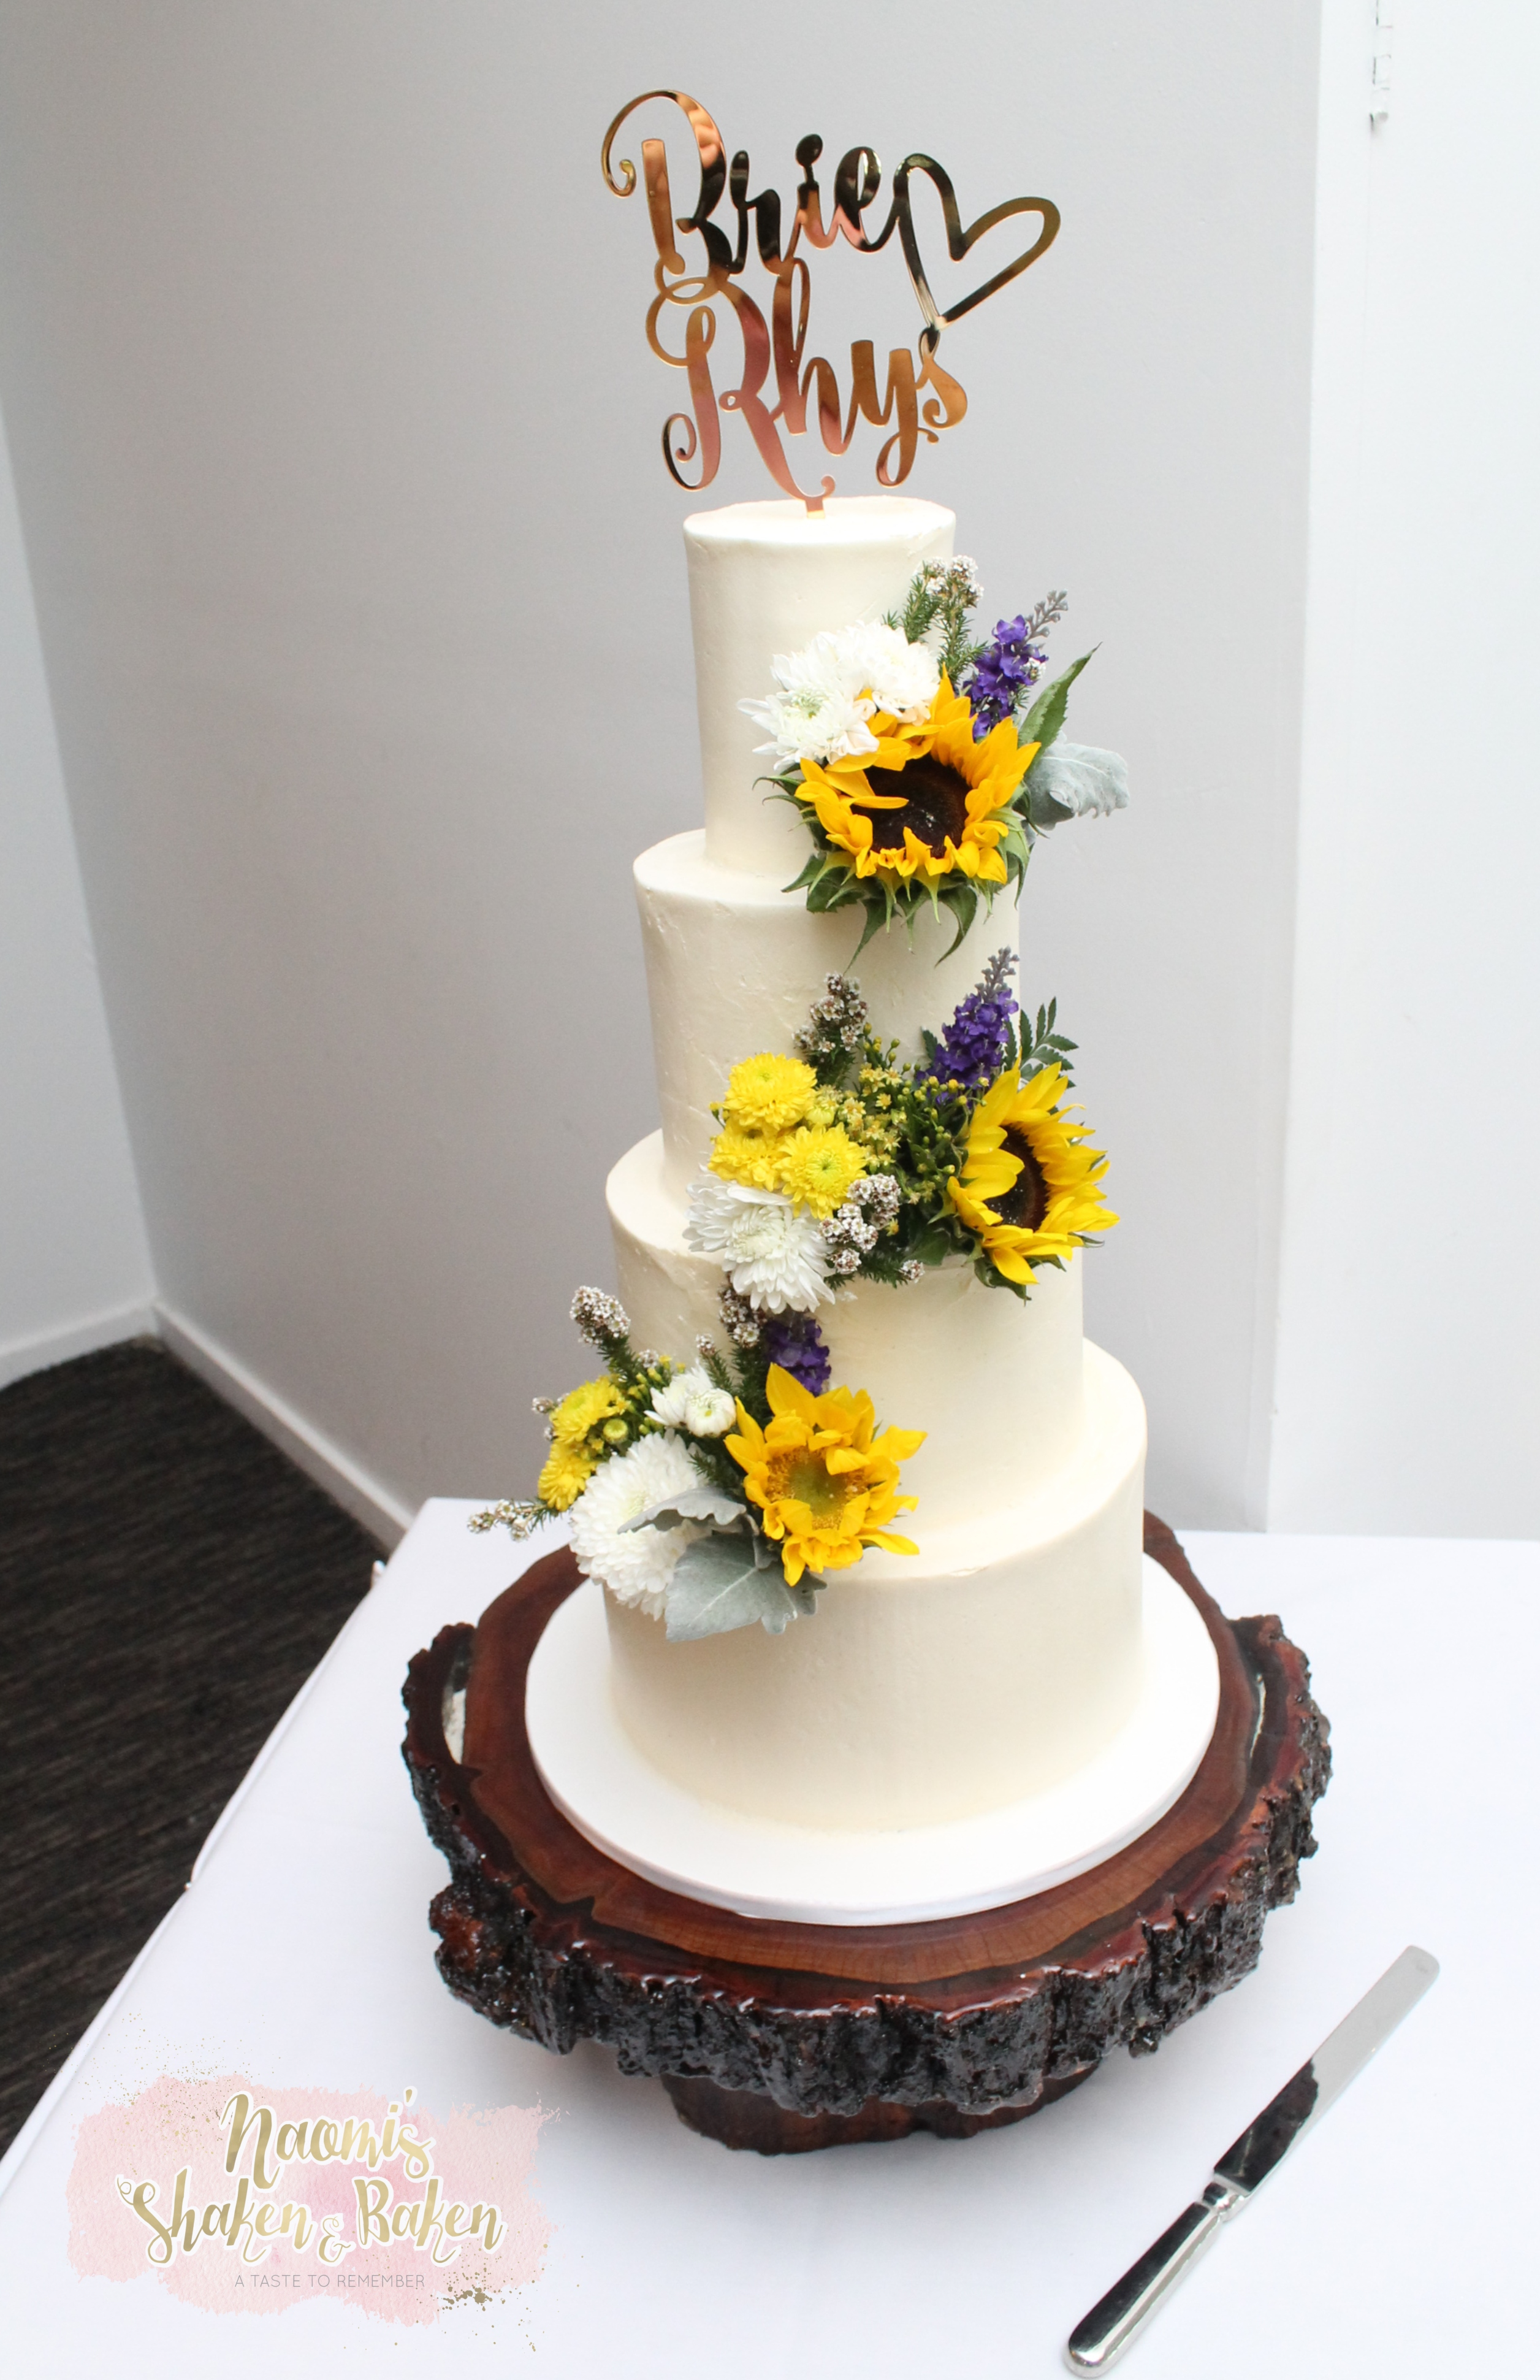 Wedding cakes Caboolture